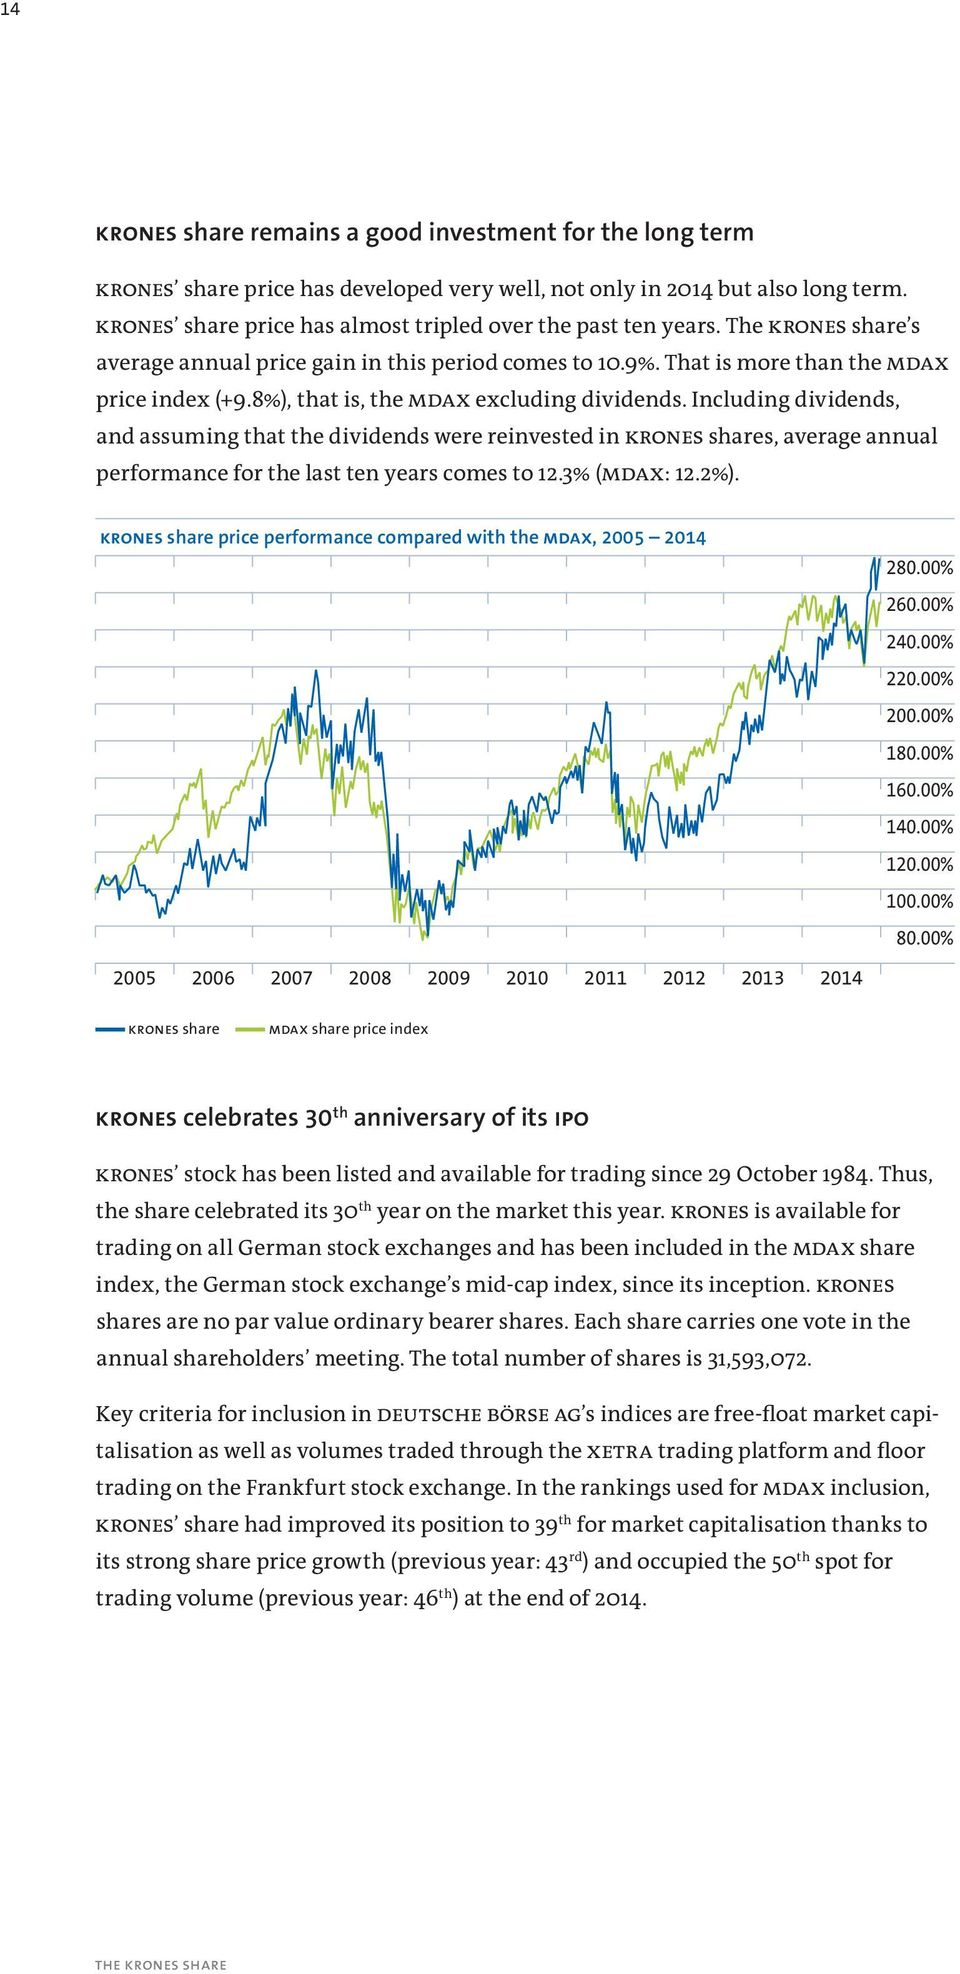 8%), that is, the MDAX excluding dividends. Including dividends, and assuming that the dividends were reinvested in KRONES shares, average annual performance for the last ten years comes to 12.